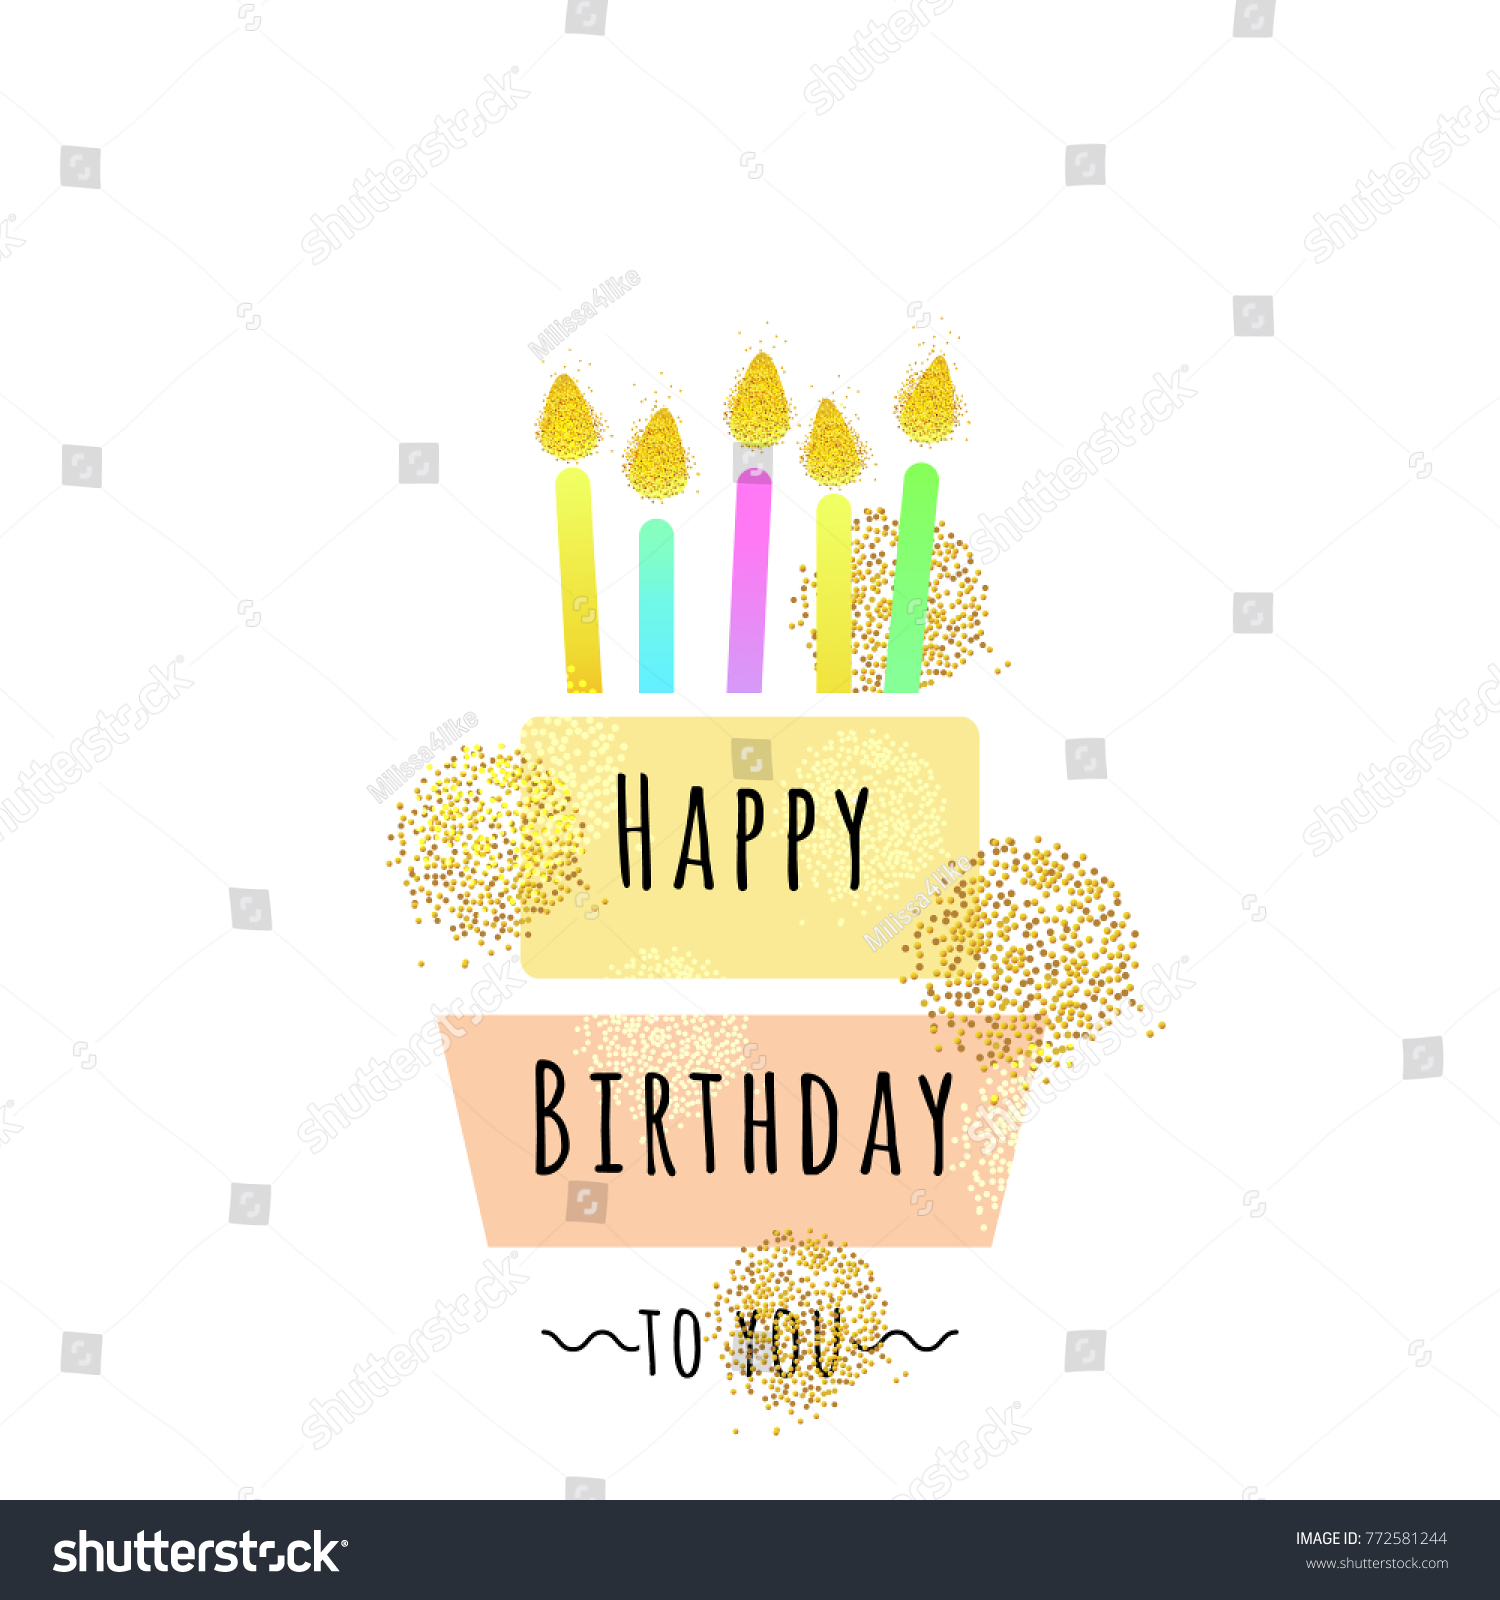 Happy Birthday Card Cake Candles Cute Stock Vector